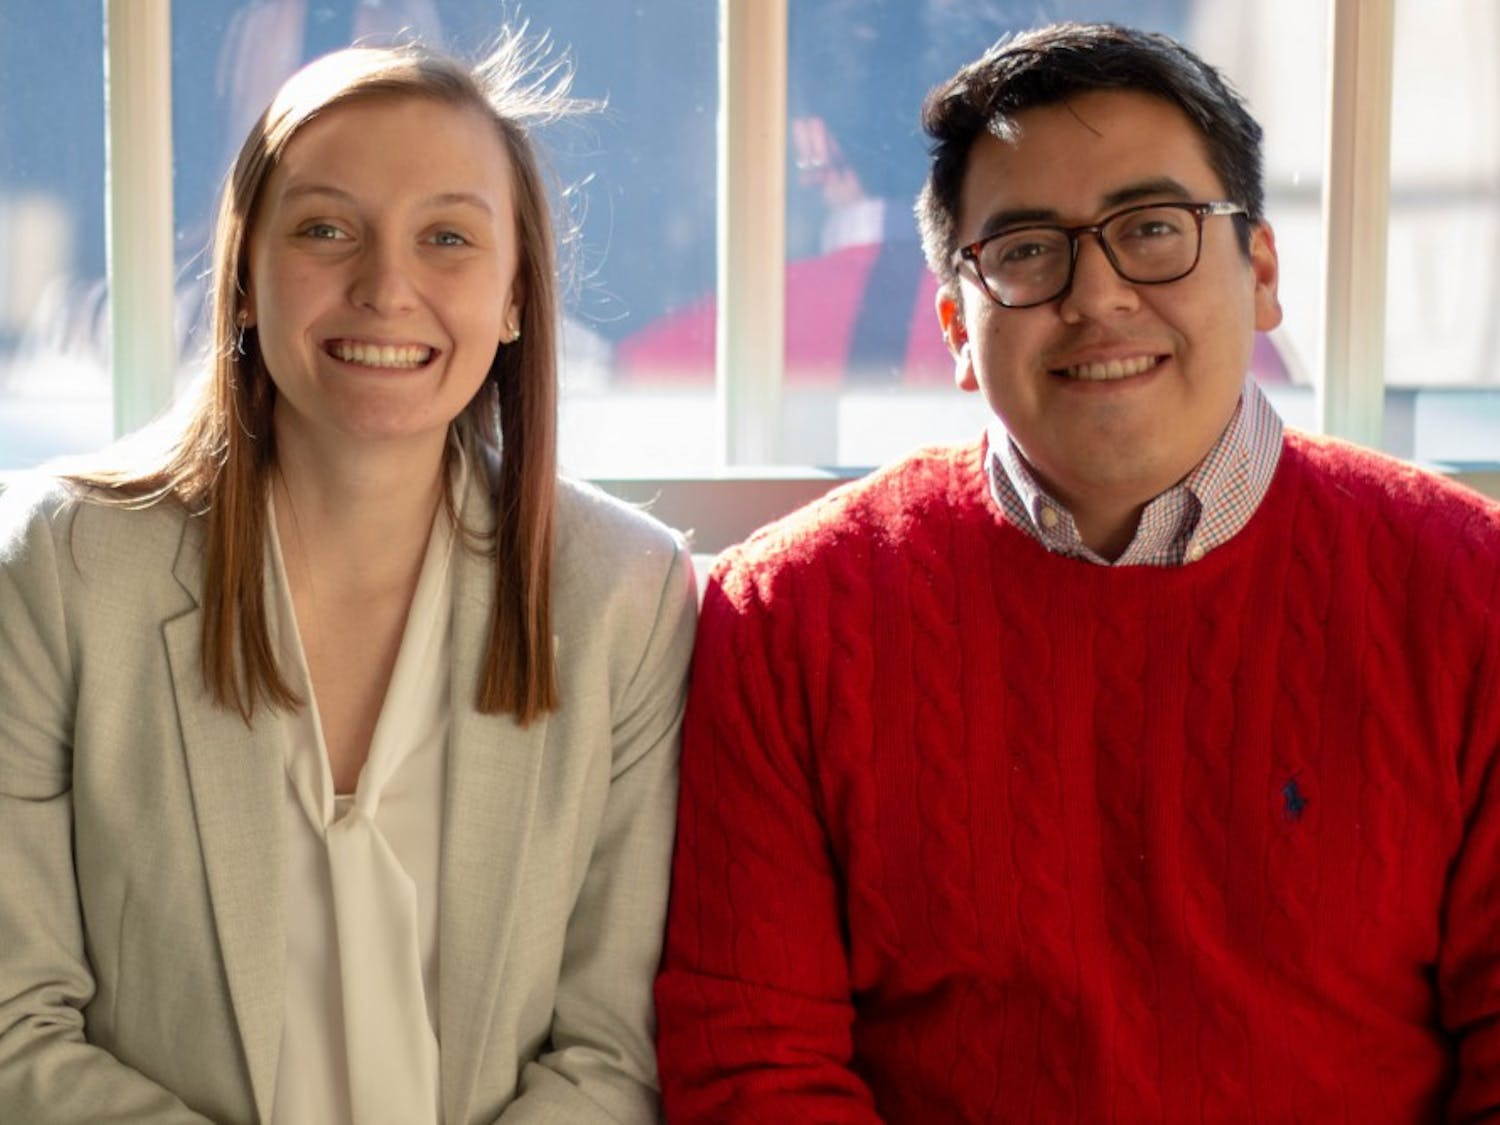 Student Body President Savannah Putnam (Left) and President of the Graduate and Professional Student Federation Manny Hernandez (right) in the Carolina Inn following a BOT meeting Thursday, Jan. 31, 2019. Both leaders recently commented on the departure of Chancellor Carol Folt.